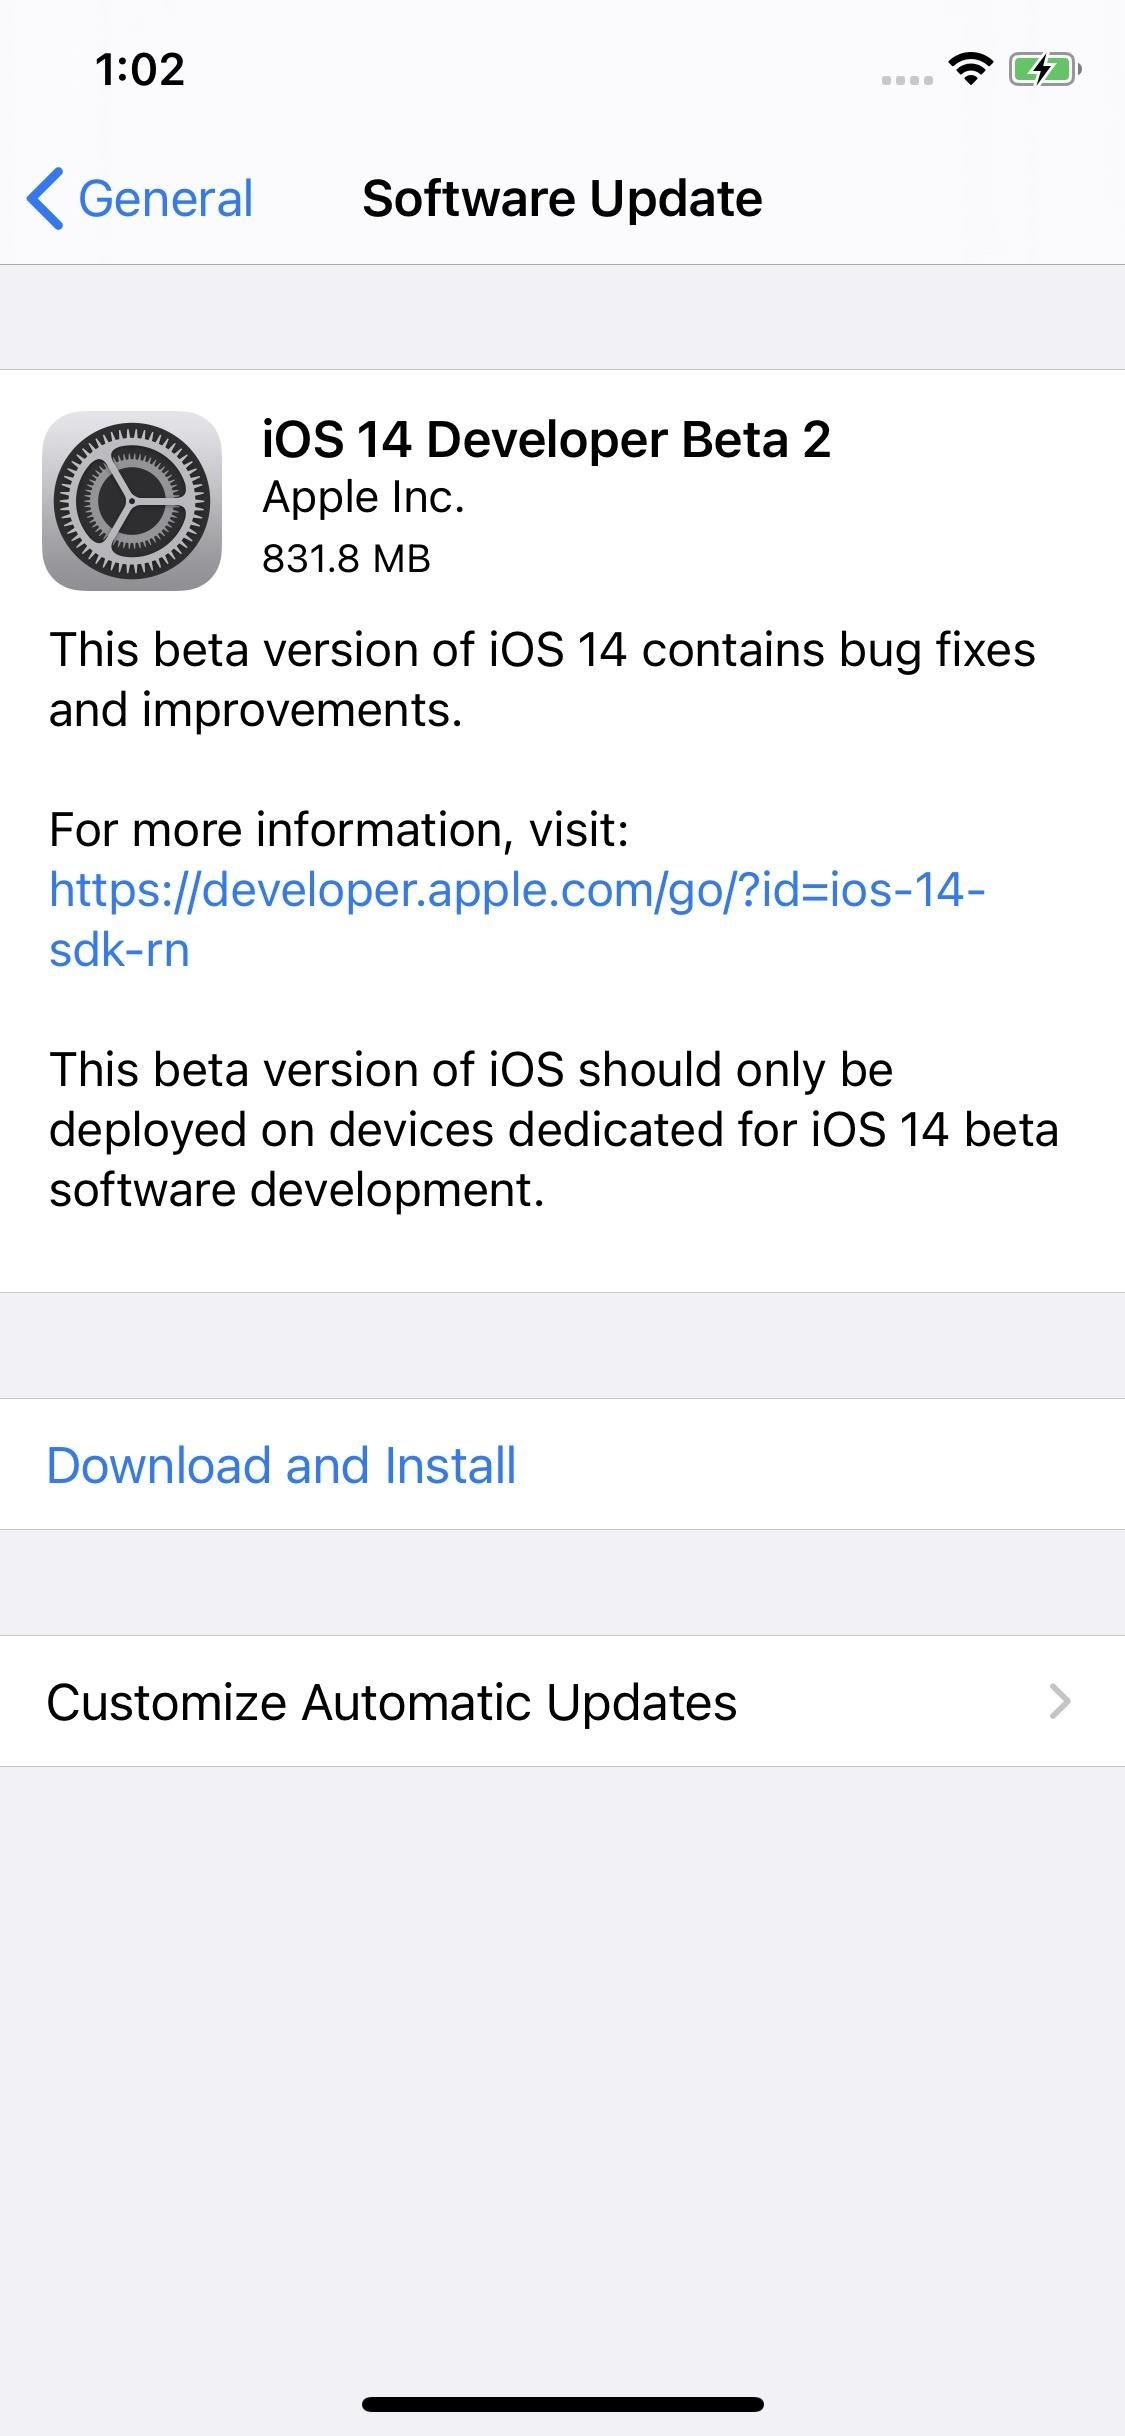 Apple Releases iOS 14 Developer Beta 2 for iPhone